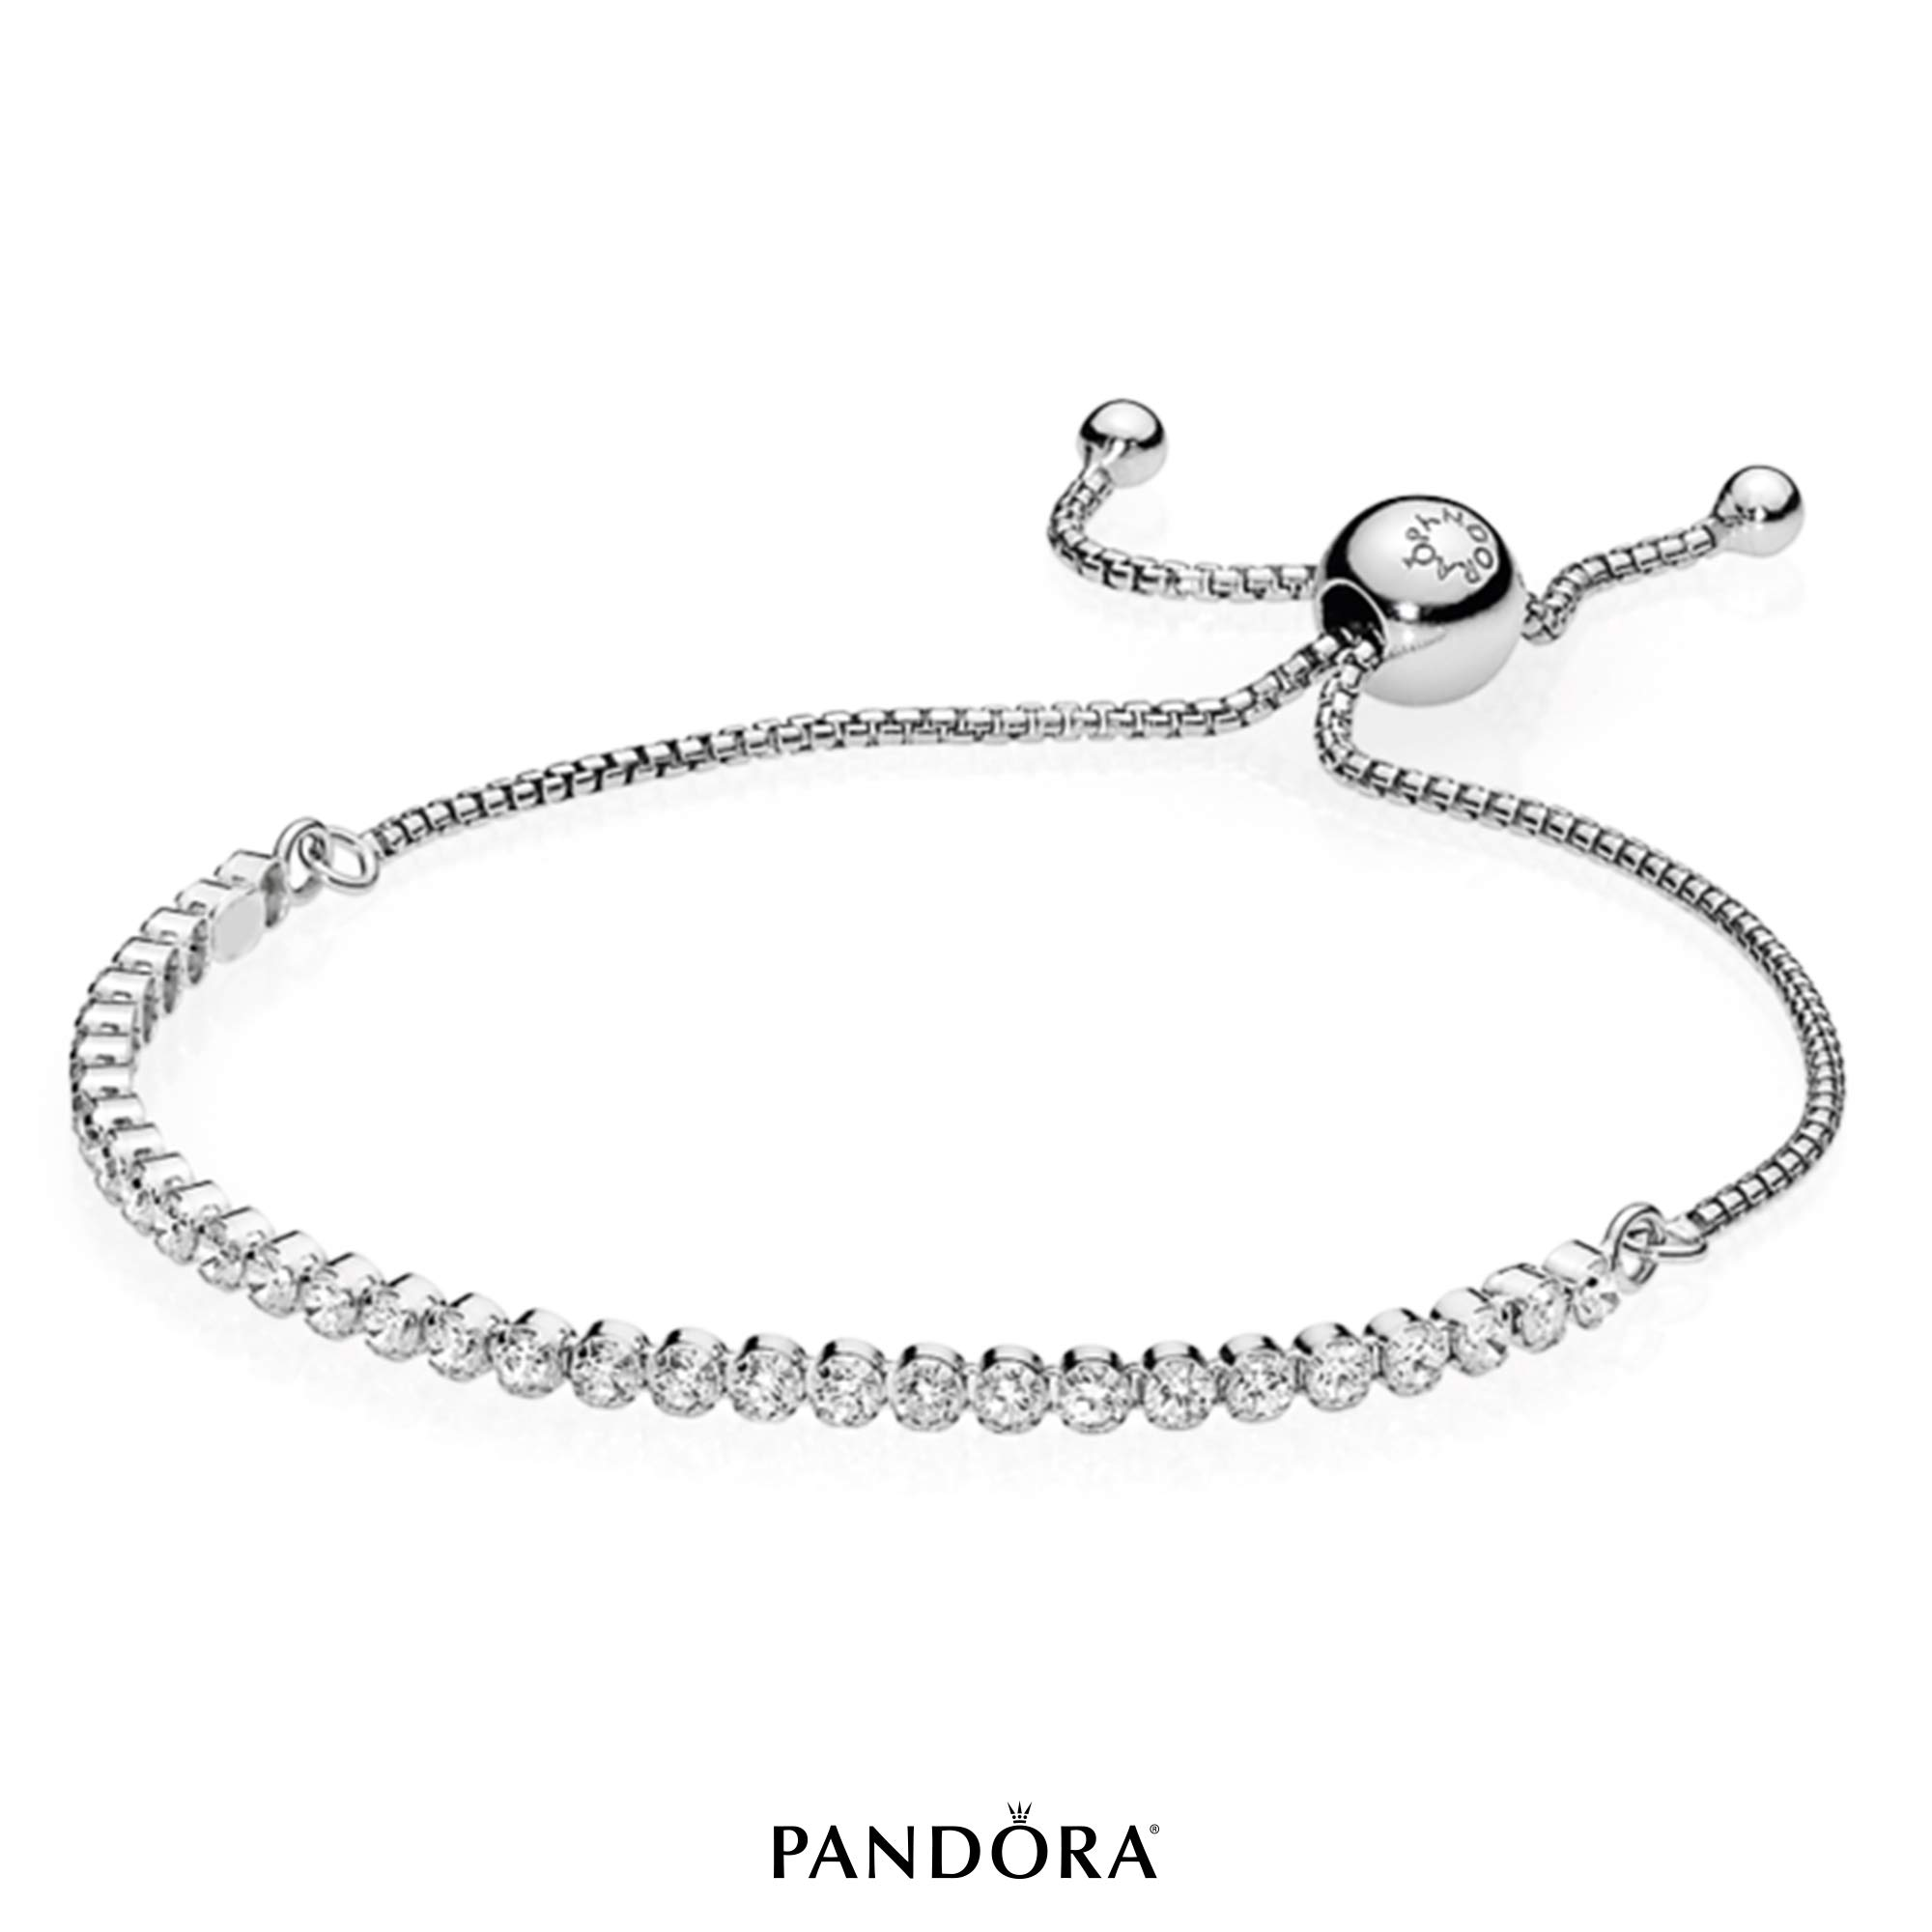 PANDORA Sparkling Strand Bracelet, Sterling Silver, Clear Cubic Zirconia, 9.1 in by PANDORA